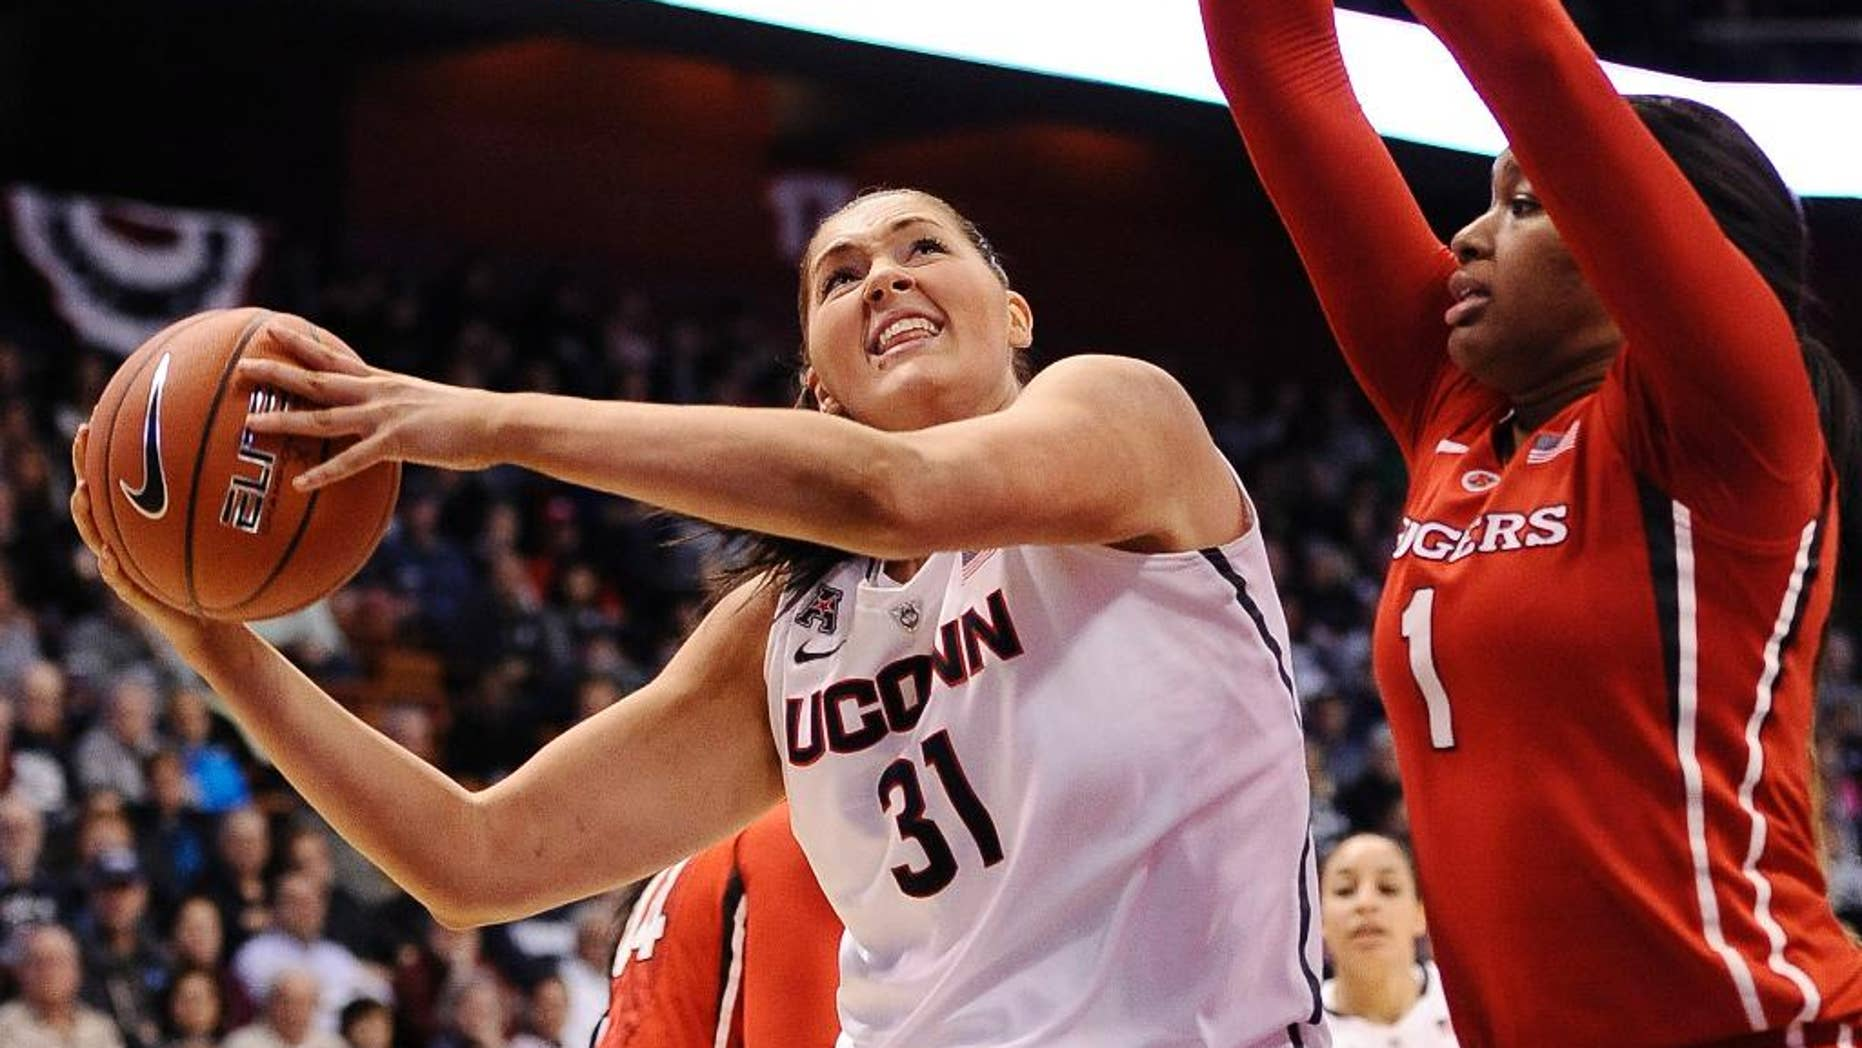 Connecticut's Stefanie Dolson (3) looks to shoot as Rutgers Rachel Hollivay, right, defends during the second half of an NCAA college basketball game in the semifinals of the American Athletic Conference women's tournament on Sunday, March 9, 2014, in Uncasville, Conn. Connecticut won 83-57. (AP Photo/Jessica Hill)